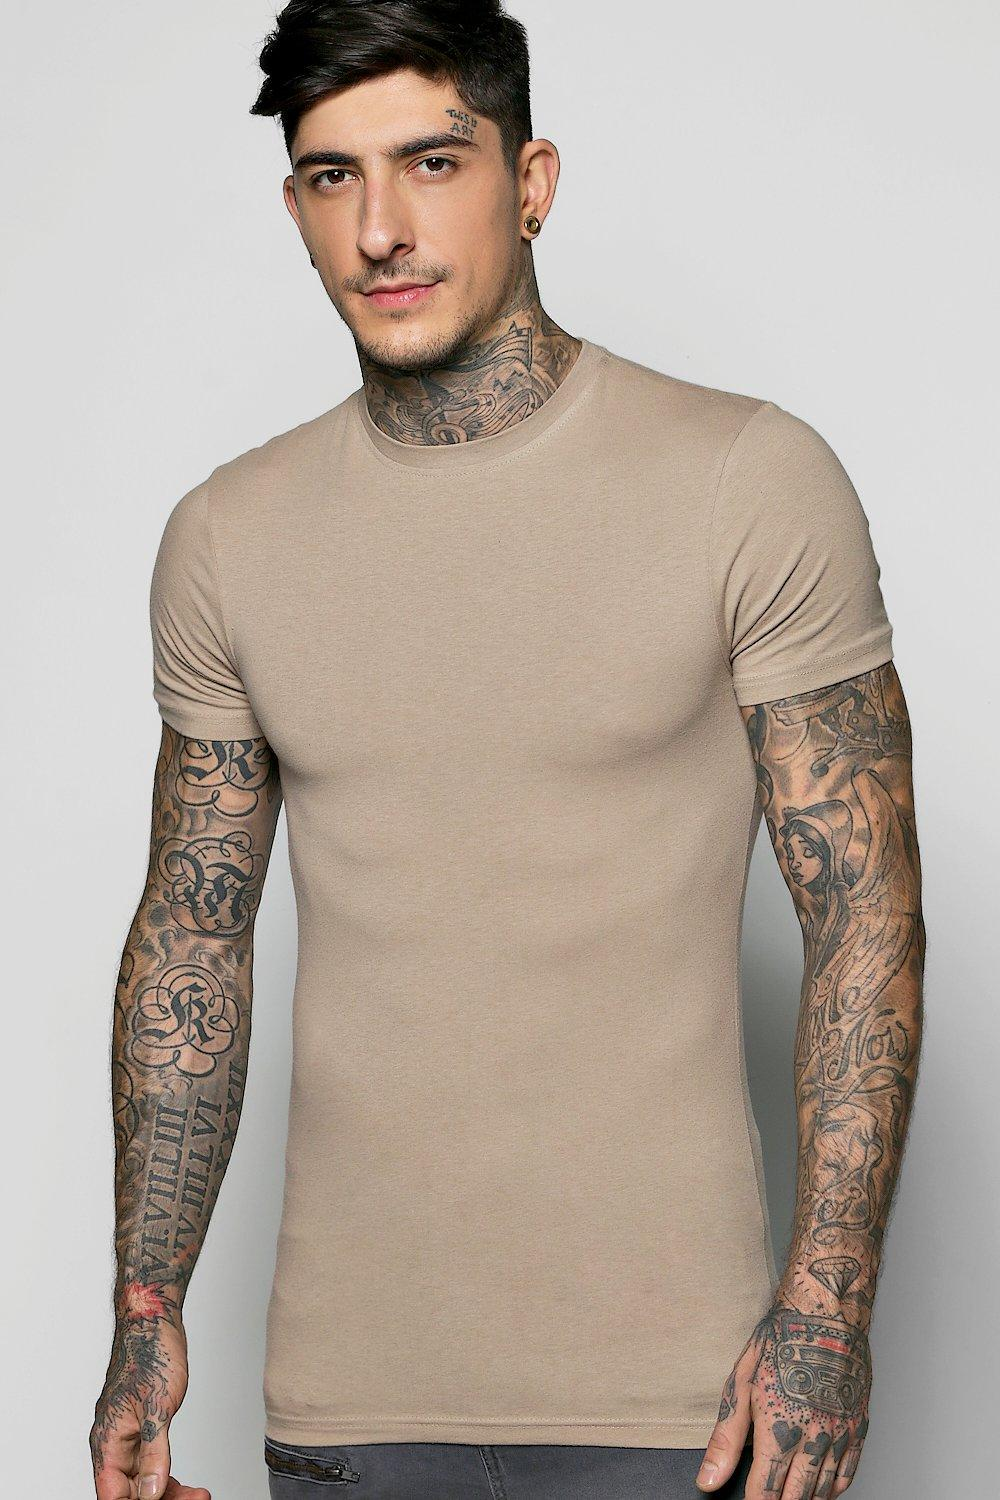 boohooMAN taupe Muscle Fit Crew Neck T Shirt